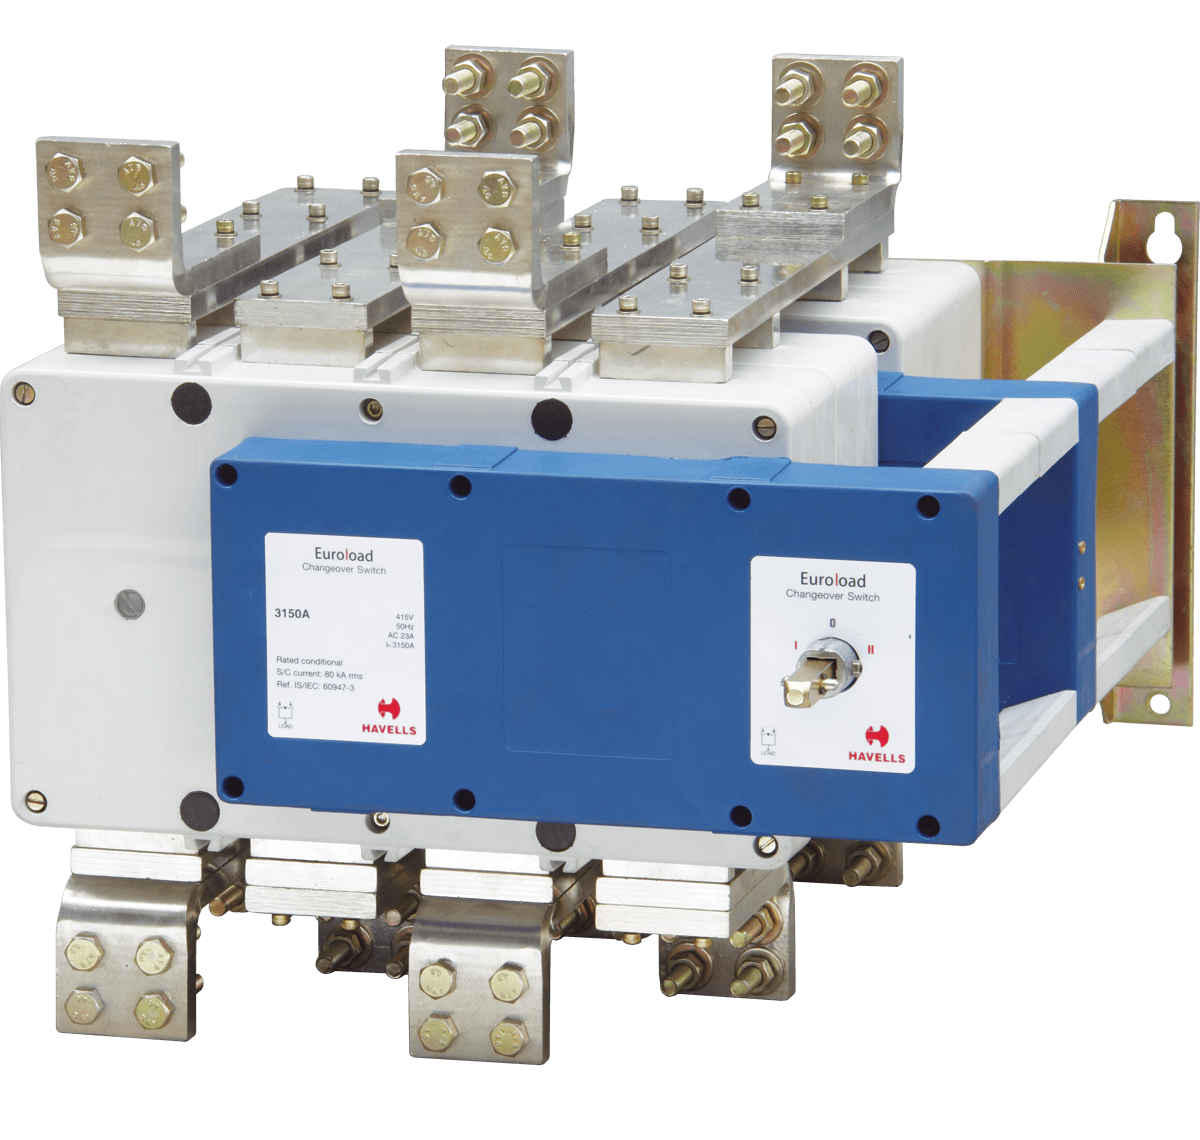 hight resolution of euroload changeover switch size 5 four pole ss enclosure